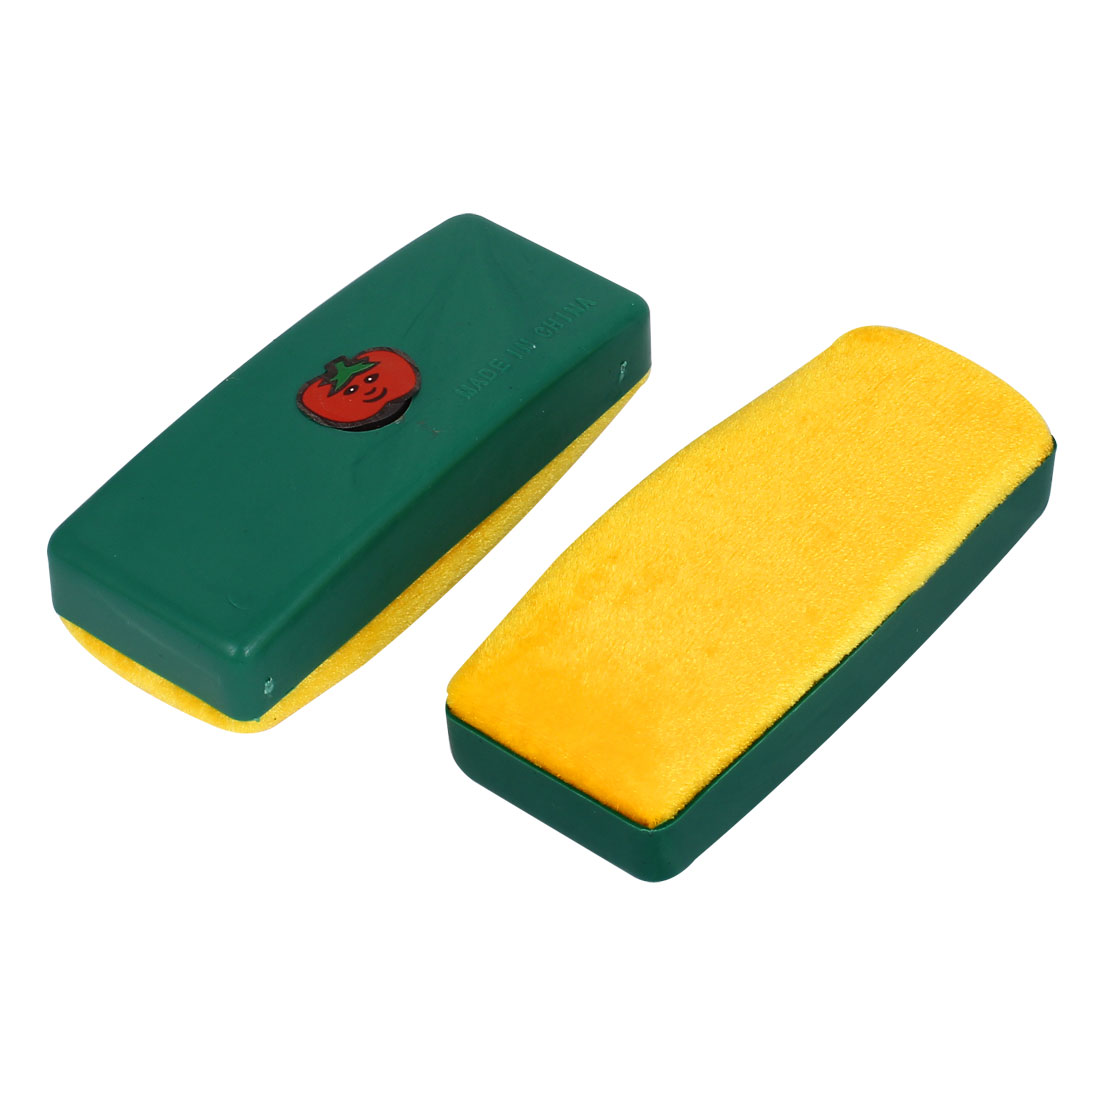 2pcs Plastic Shell Whiteboard Blackboard Cleaner Dry Marker Eraser Yellow Green